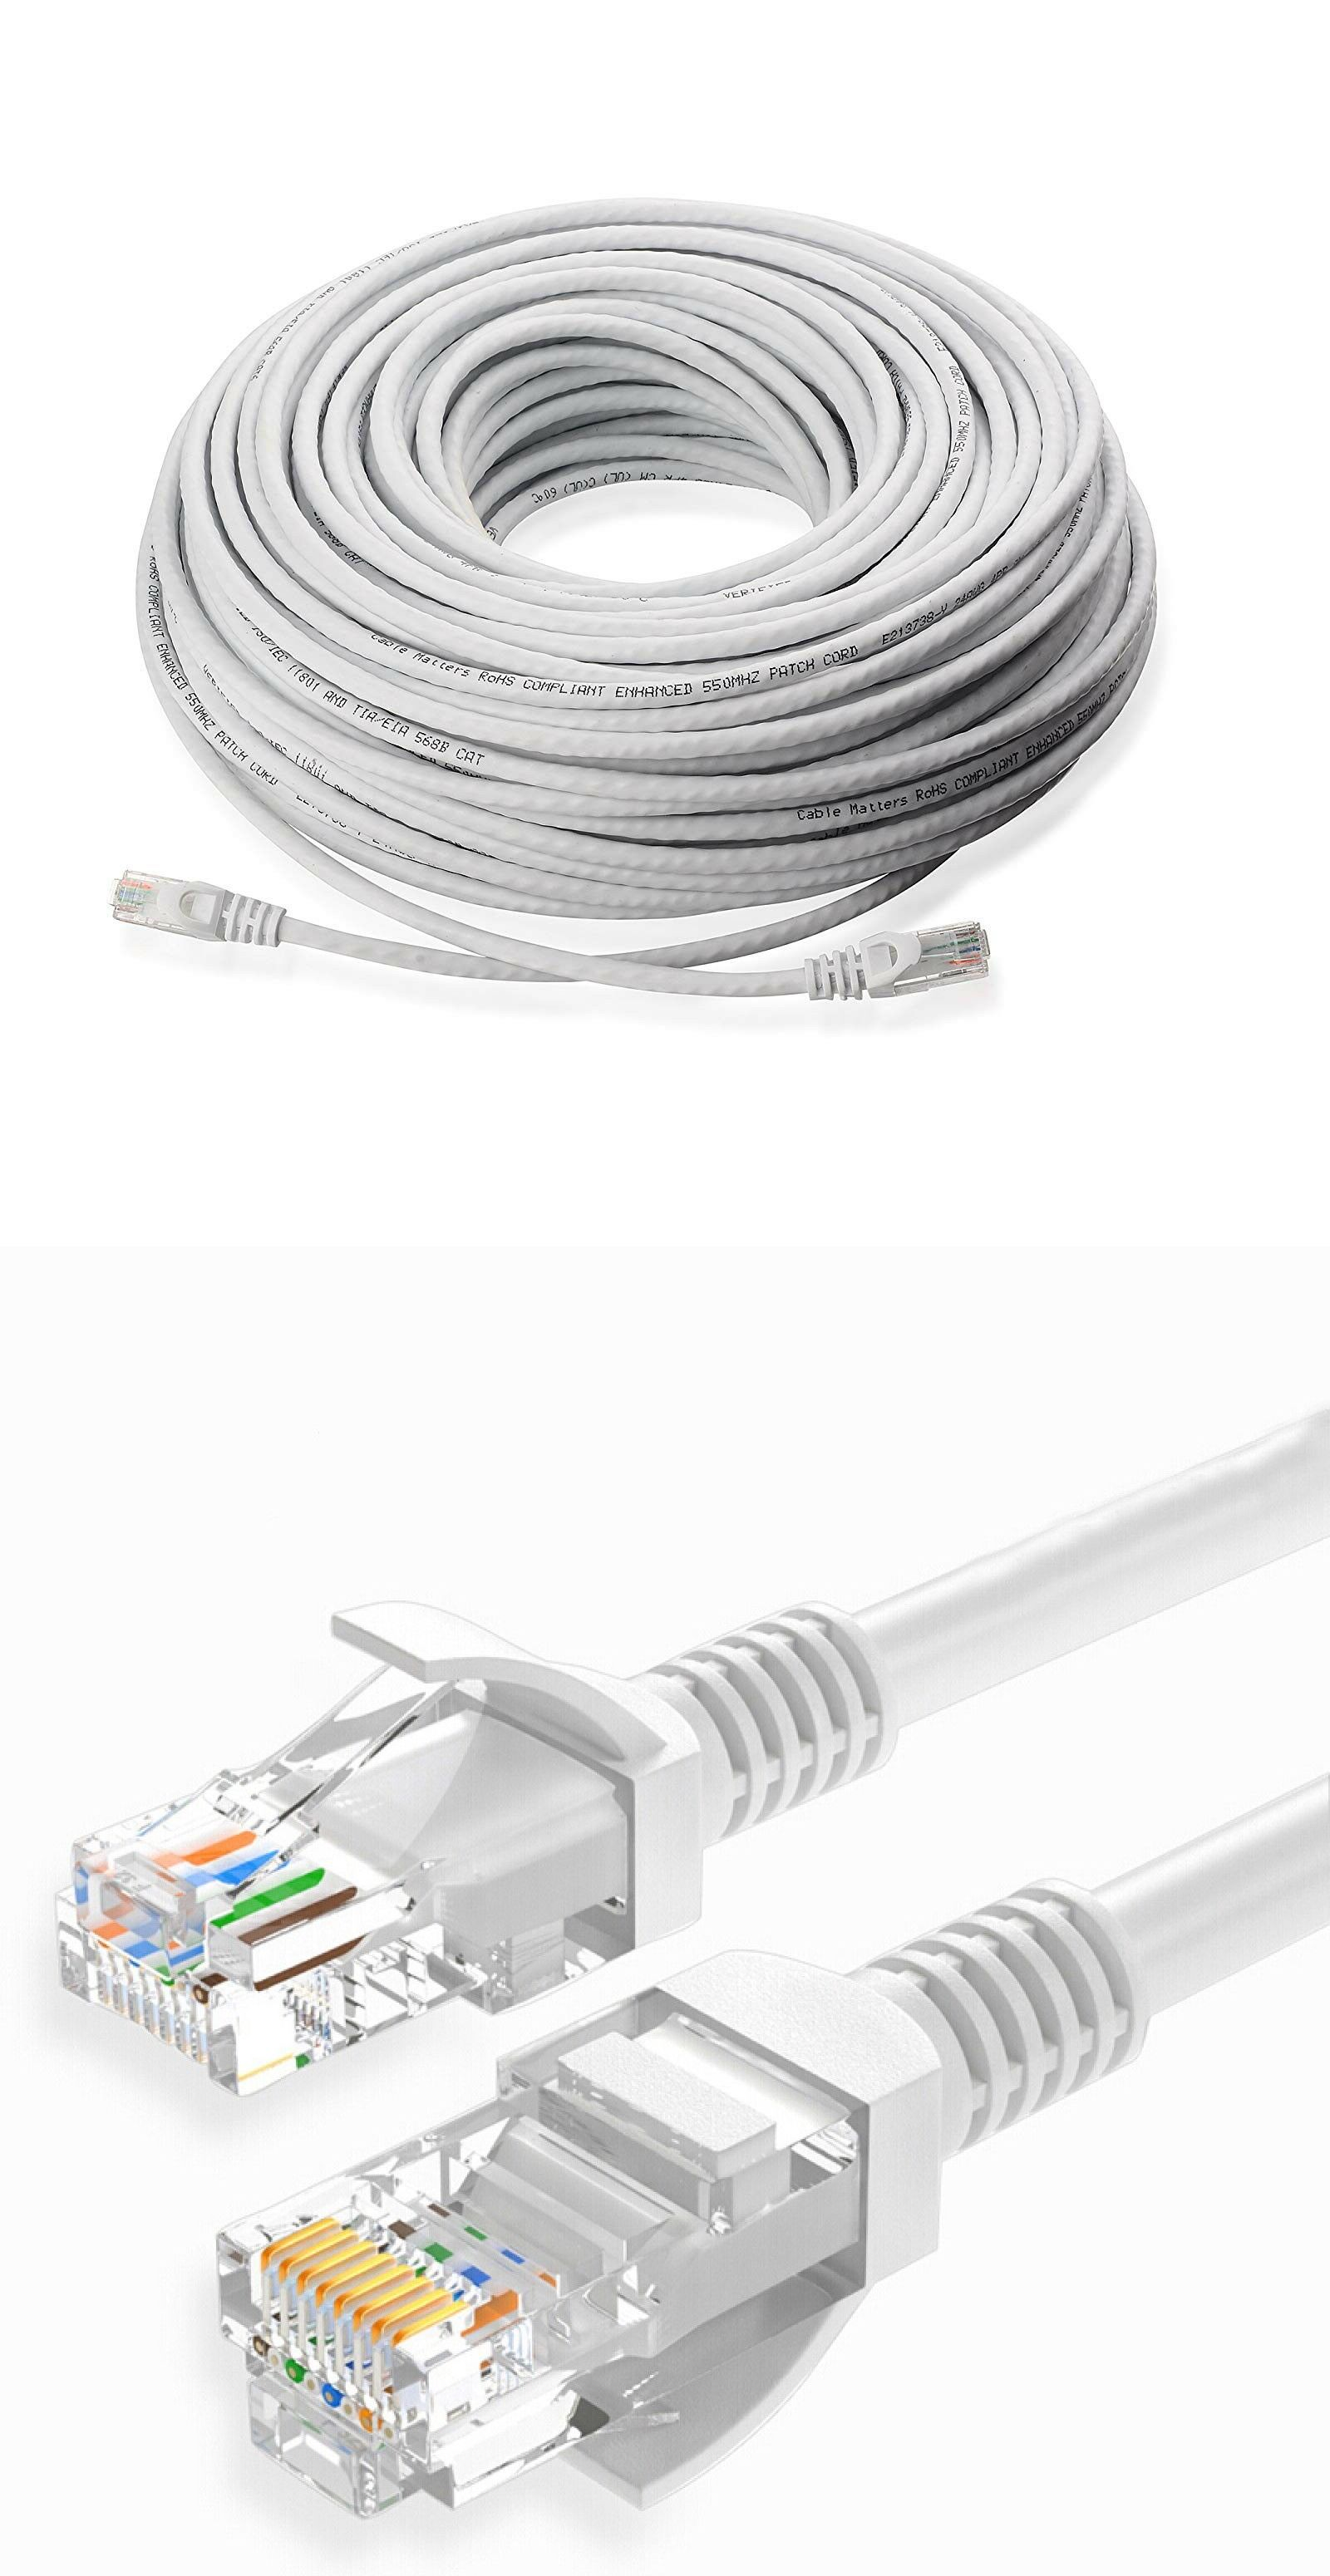 hight resolution of ethernet cables rj 45 8p8c 64035 100ft cat5e poe ip camera nvr ethernet cable